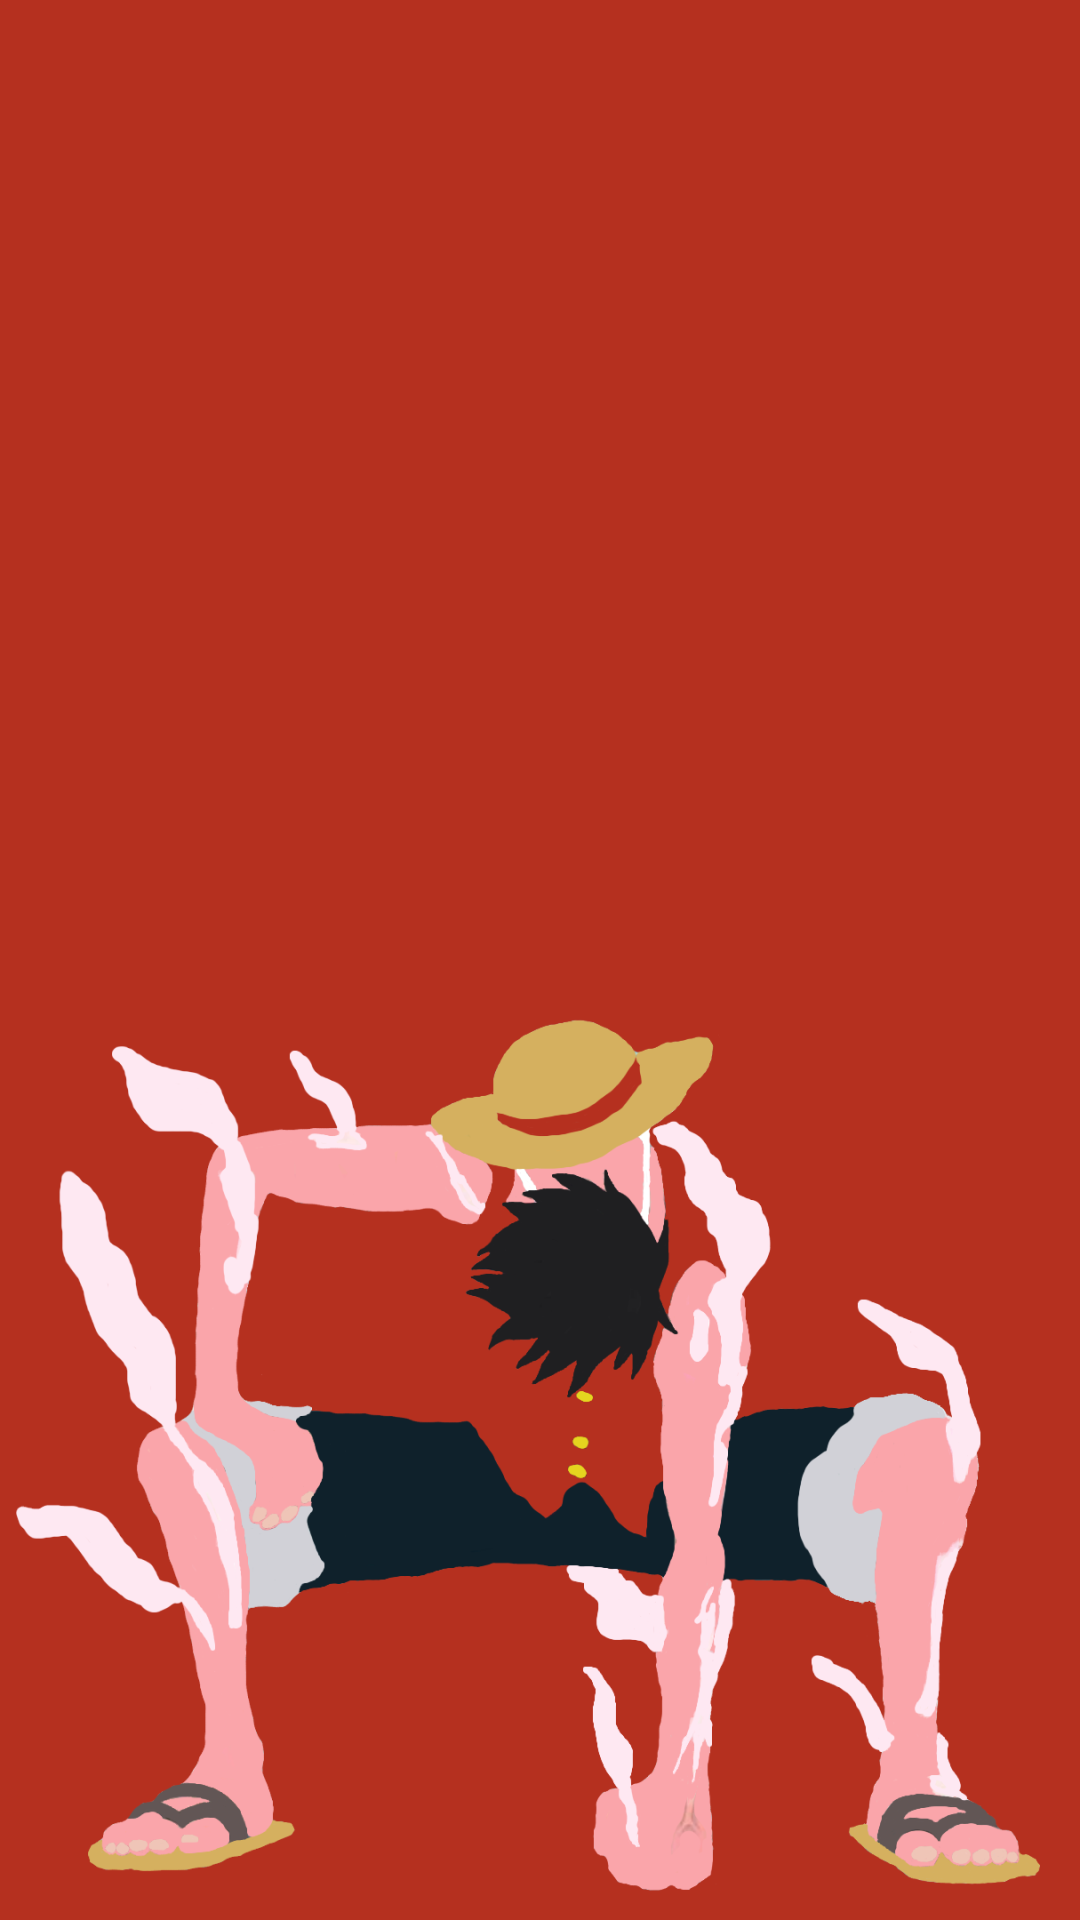 Anime One Piece 1080x1920 Wallpaper Id 695360 Mobile Abyss